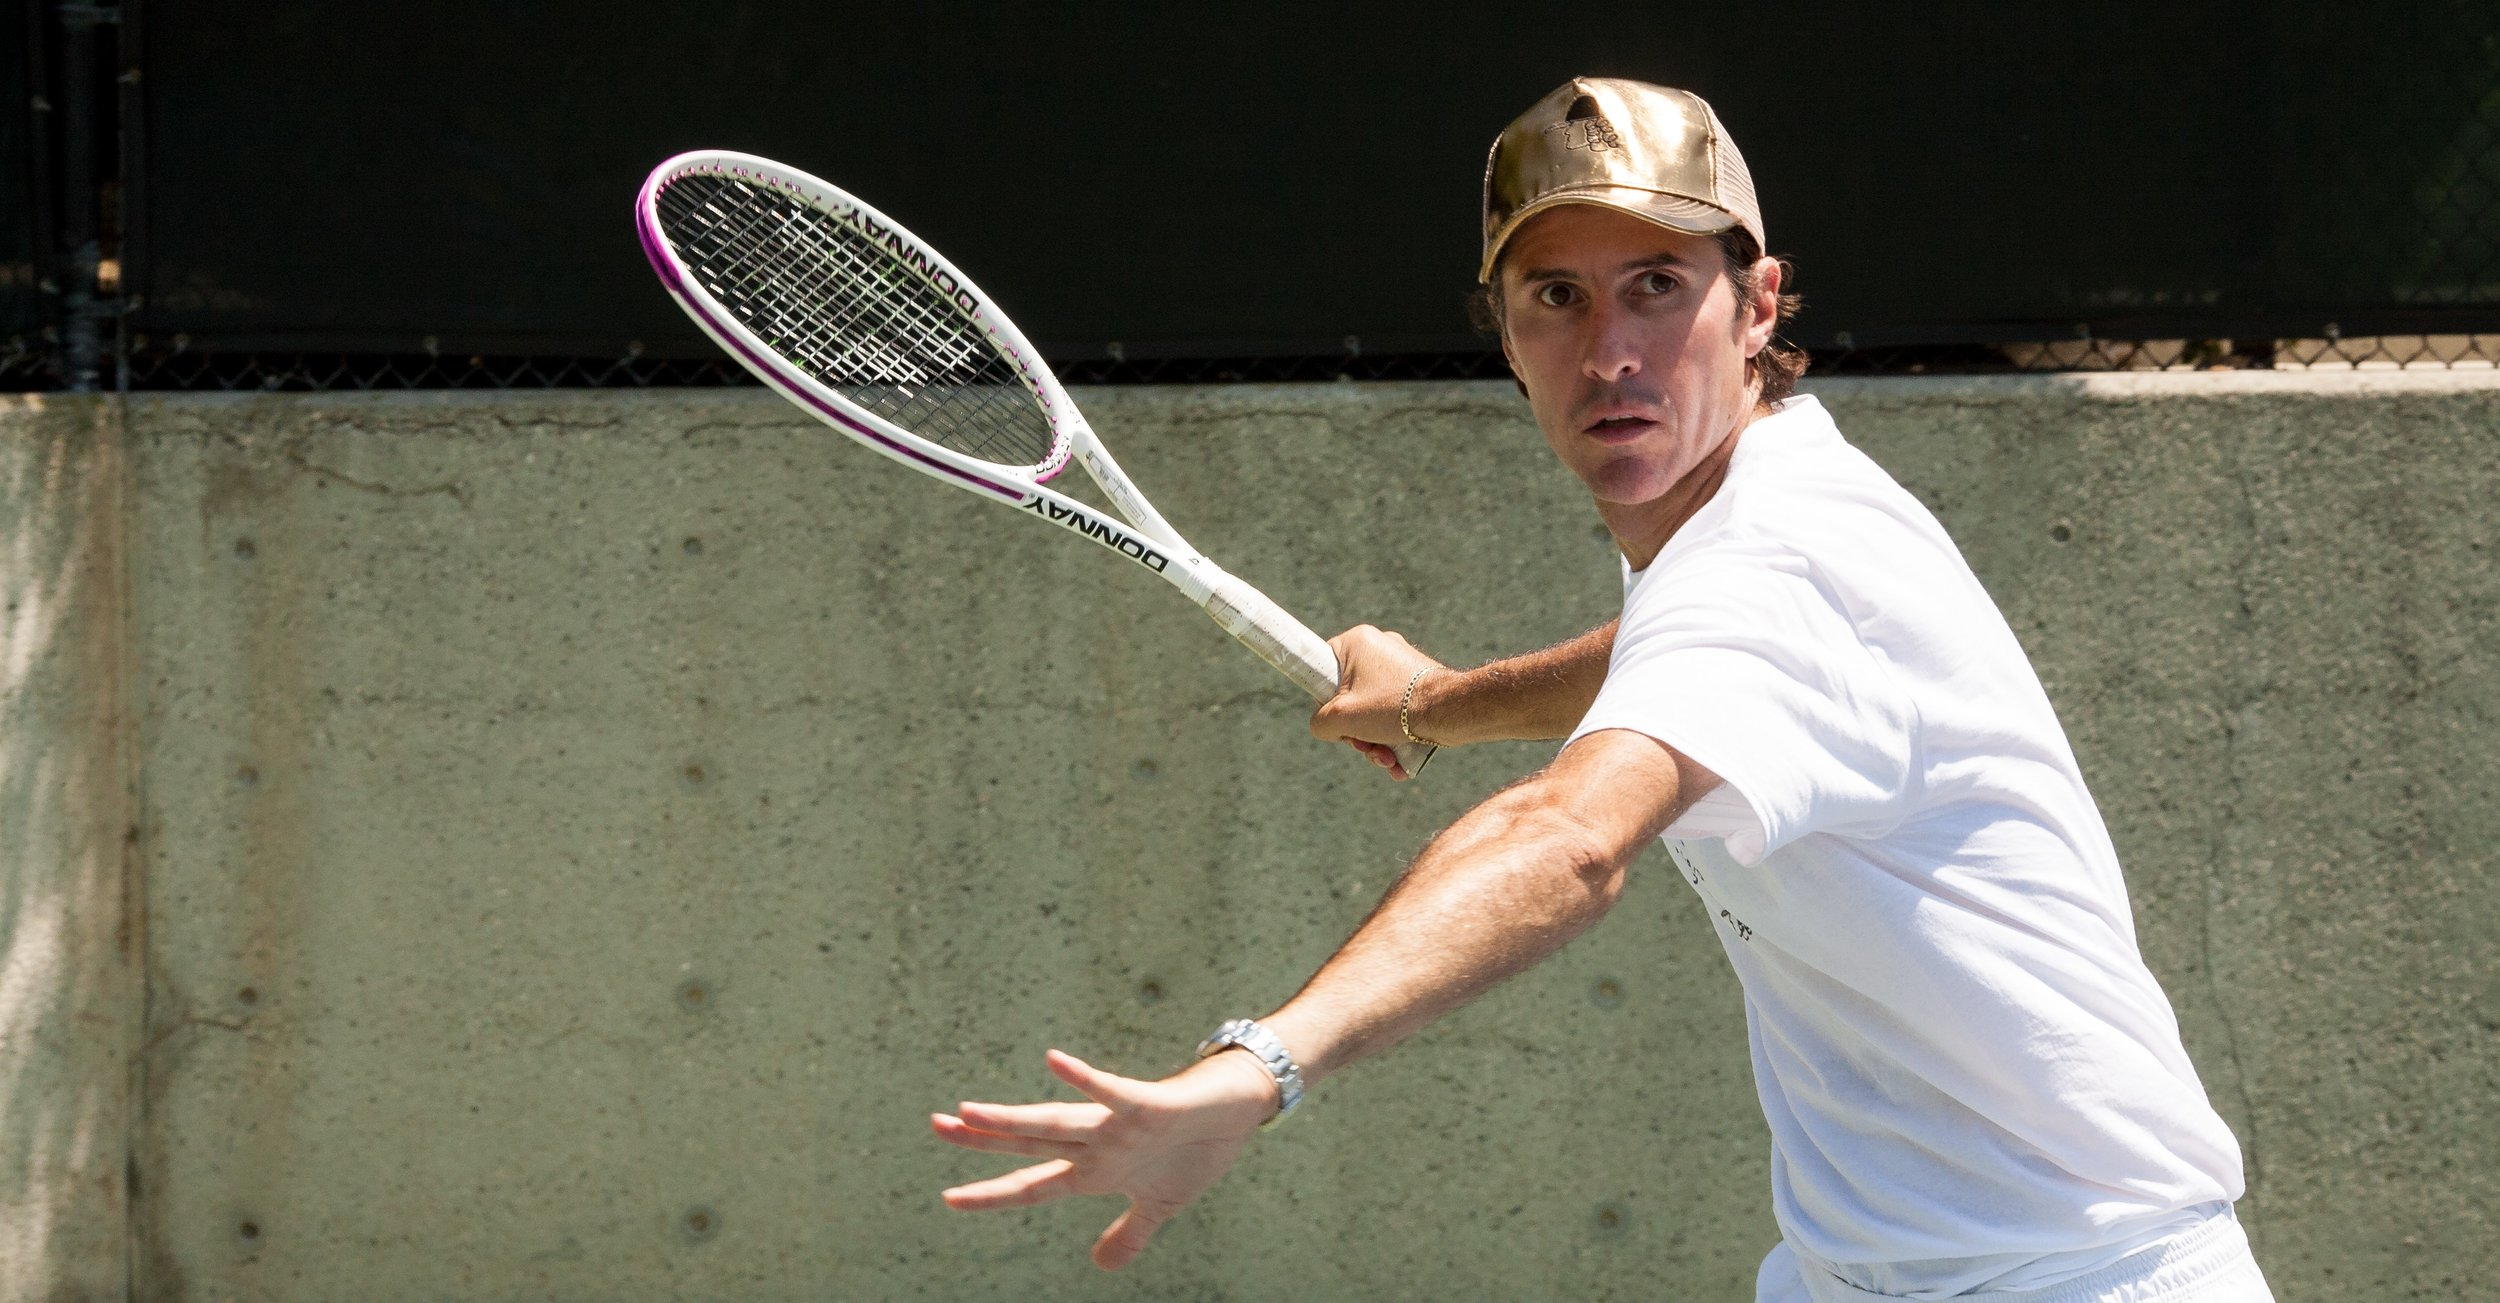 Vince Spadea, Former ATP Tour World No. 18 High Performance Coach, Los Angeles, CA